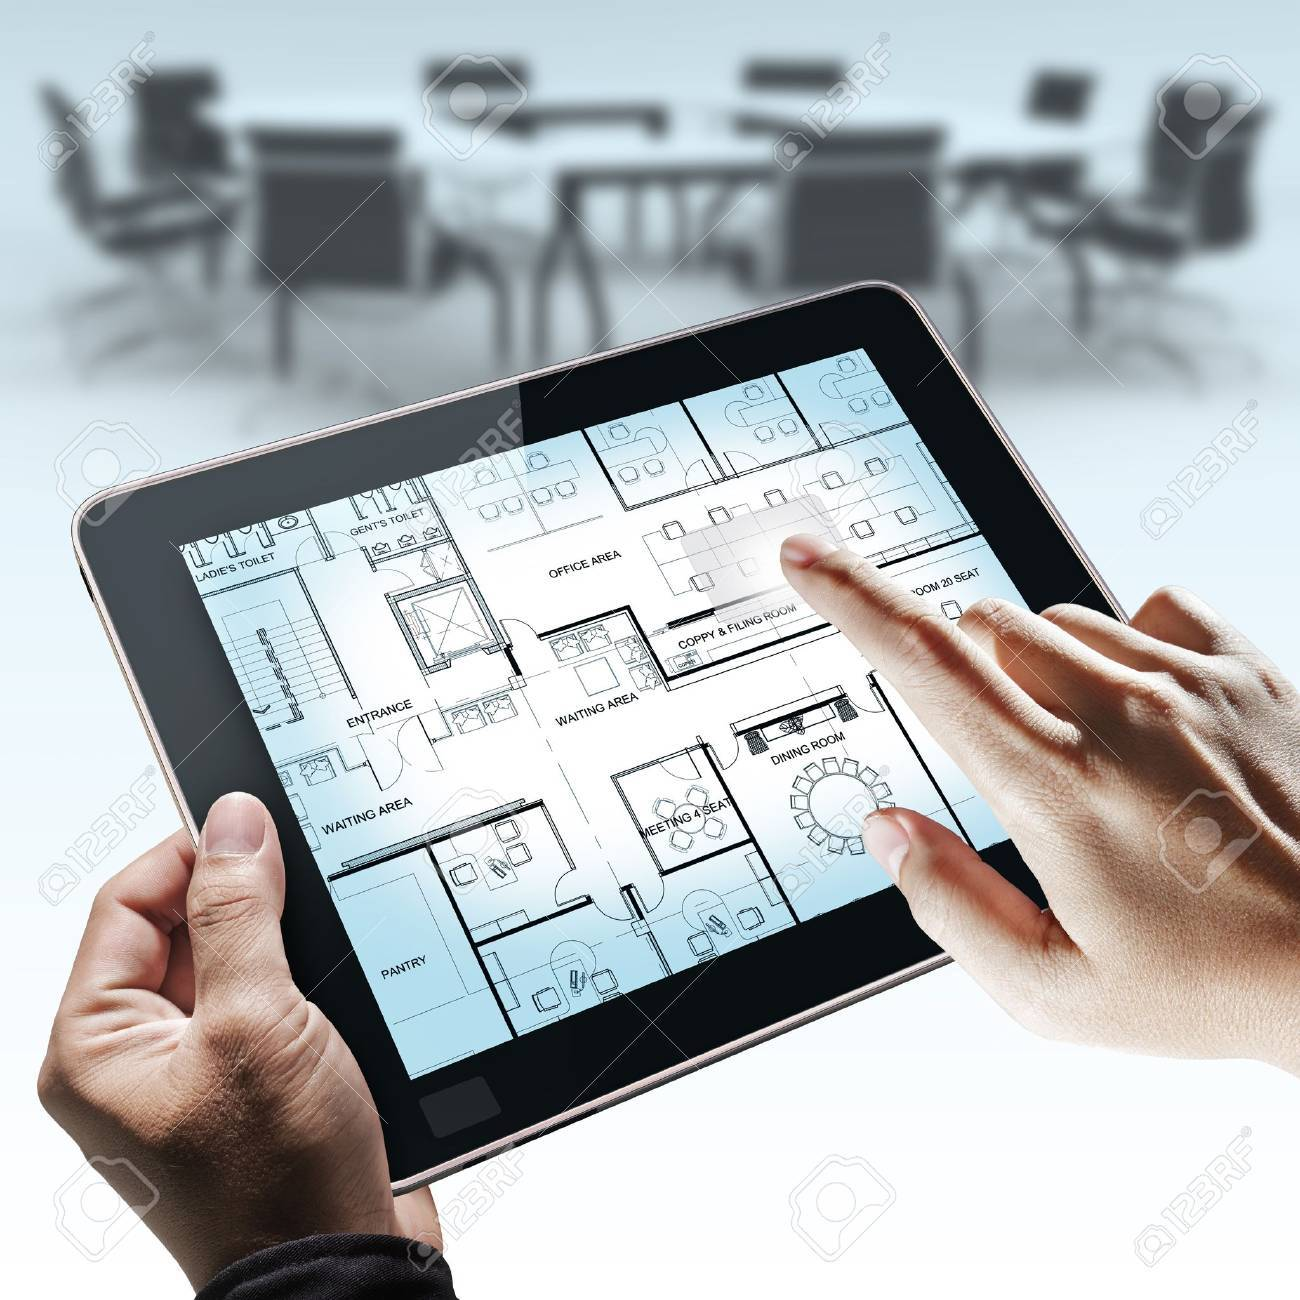 business hand point on interior layout plan on tablet computer as meeting concept Stock Photo - 11321650